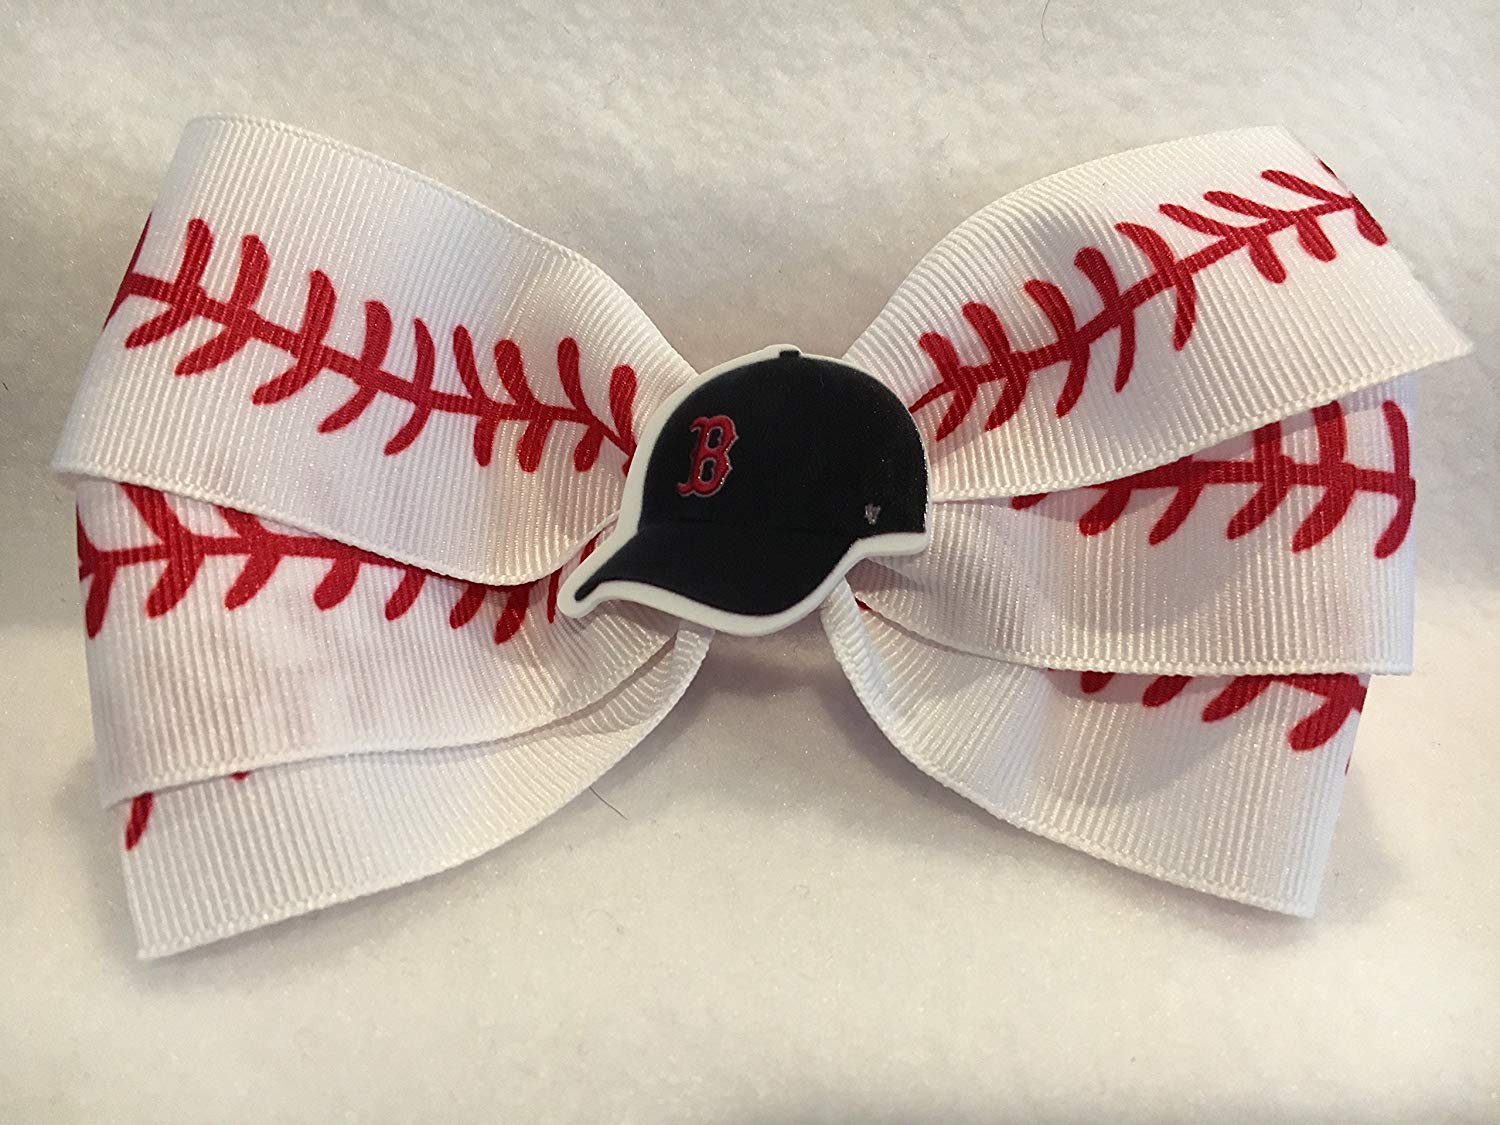 e5a9fb8c40c51 Get Quotations · Boston Red Sox Hair Bow